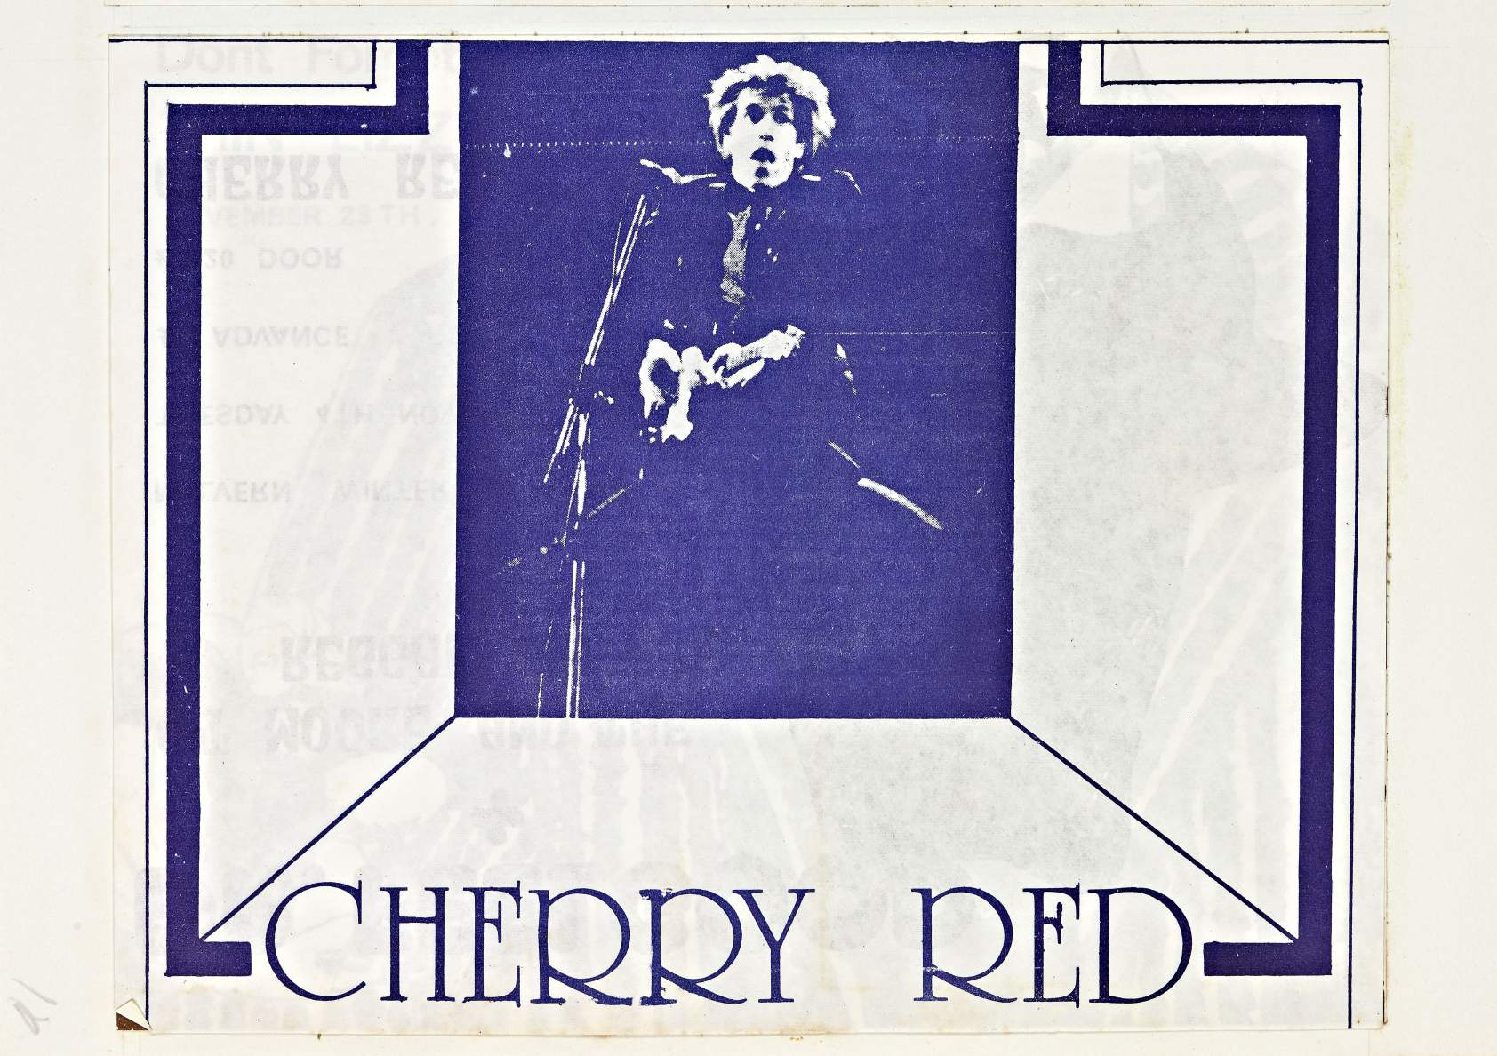 Cherry Red 'fanzine', including advert for Dr Feelgood at Malvern Winter Gardens, 4 November 1975